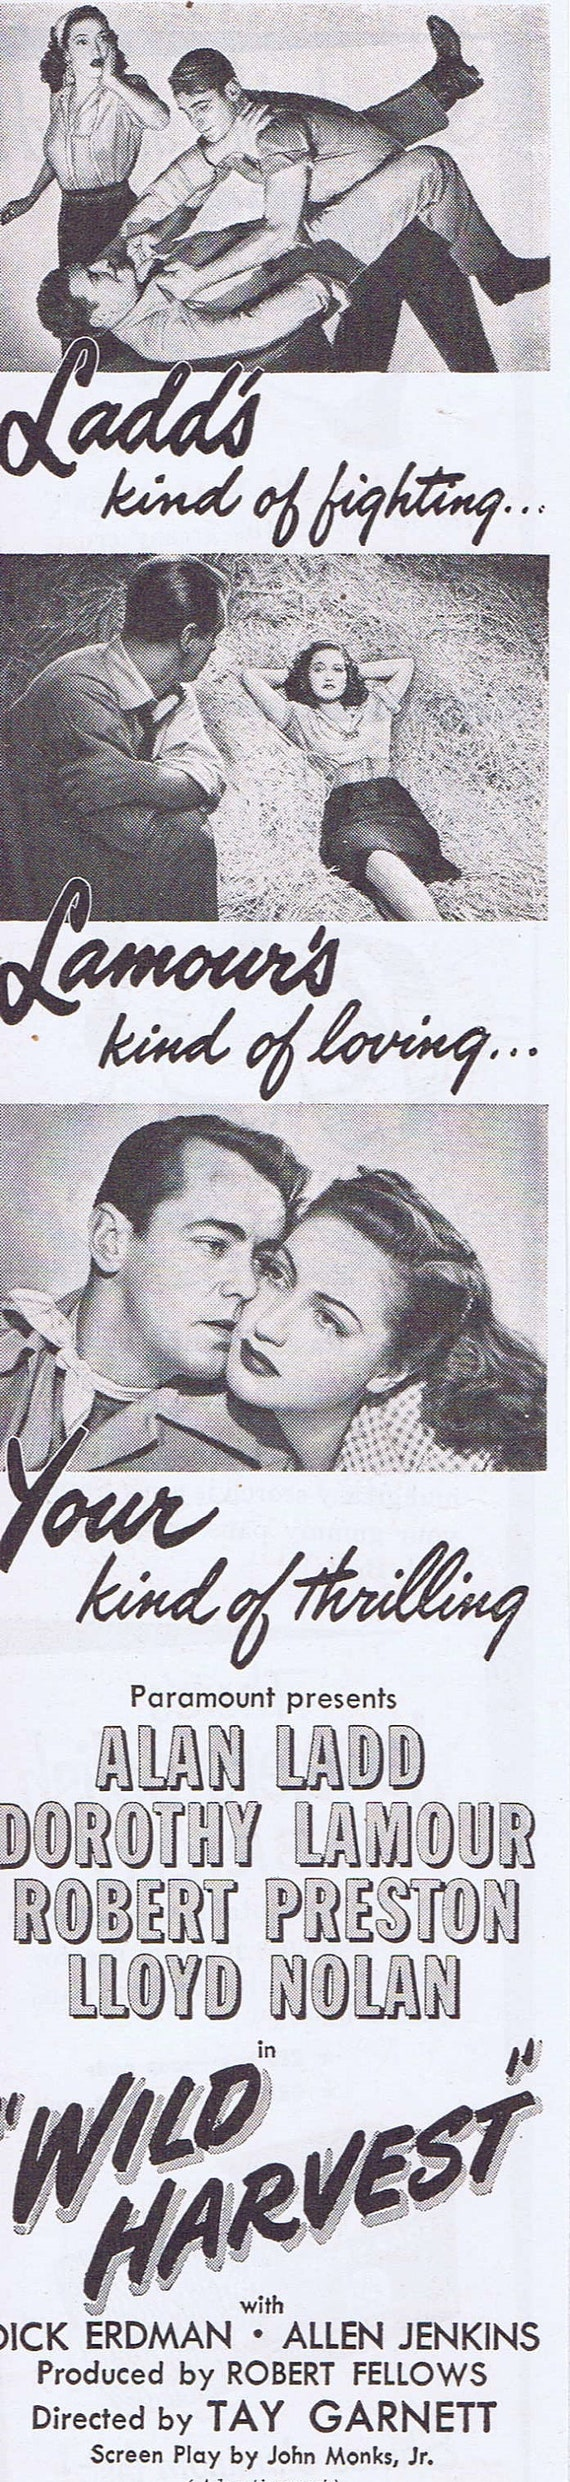 Alan Ladd in Wild Harvest 1947 Original Vintage Small Movie Advertisement with Dorothy Lamour